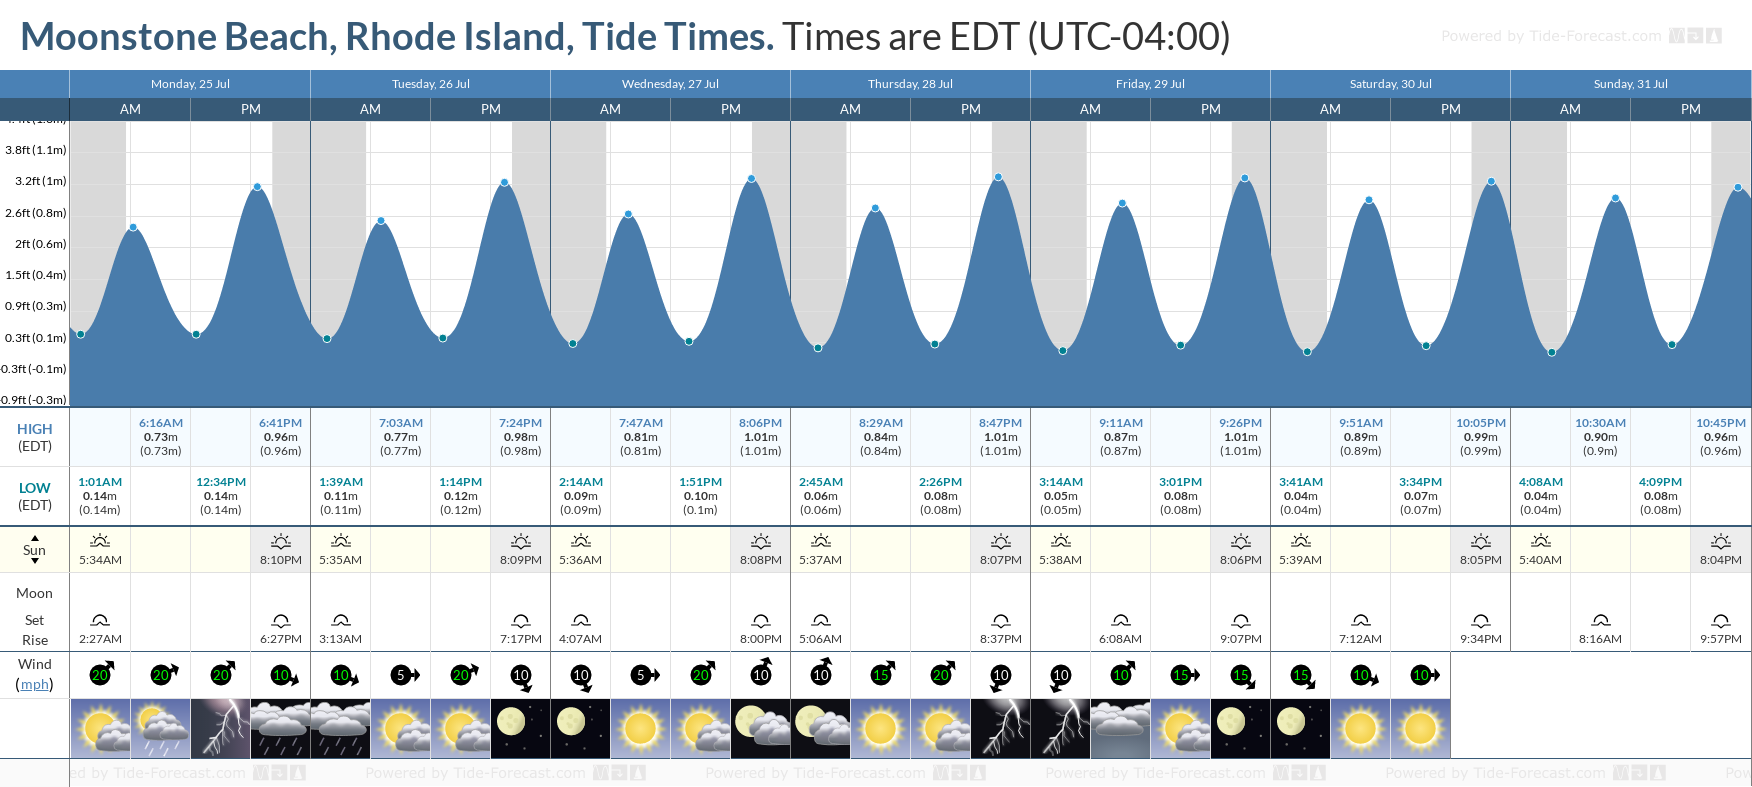 Moonstone Beach, Rhode Island Tide Chart including high and low tide tide times for the next 7 days